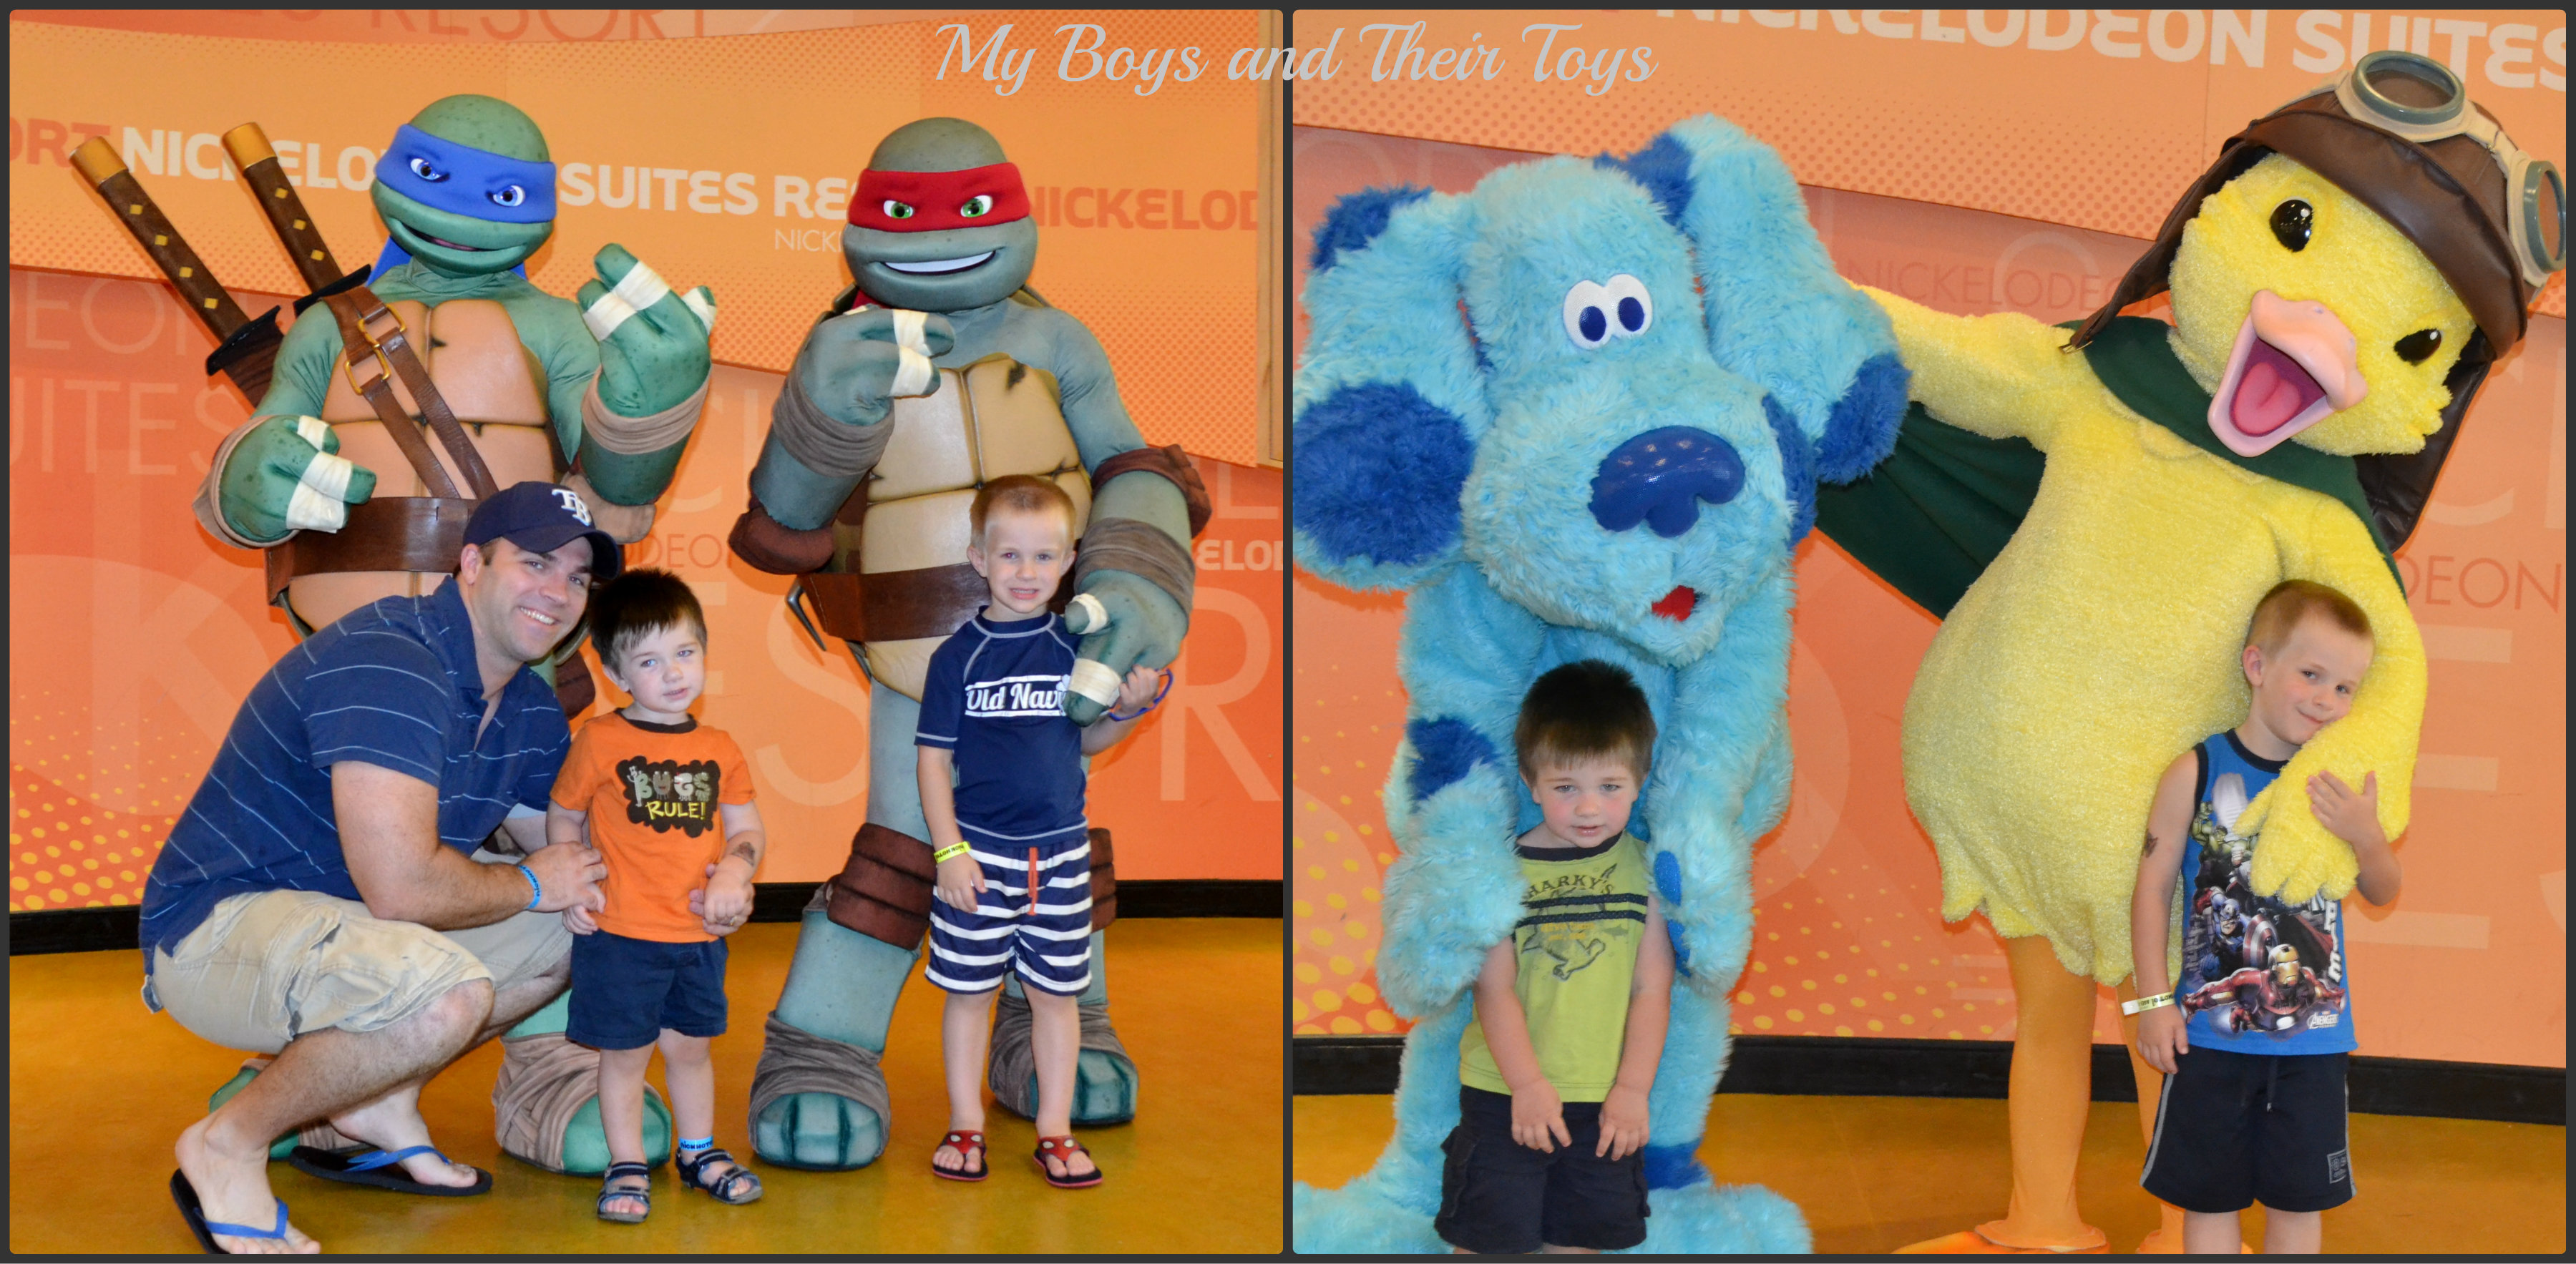 Book a stay at nickelodeon suites resort review for Character hotel